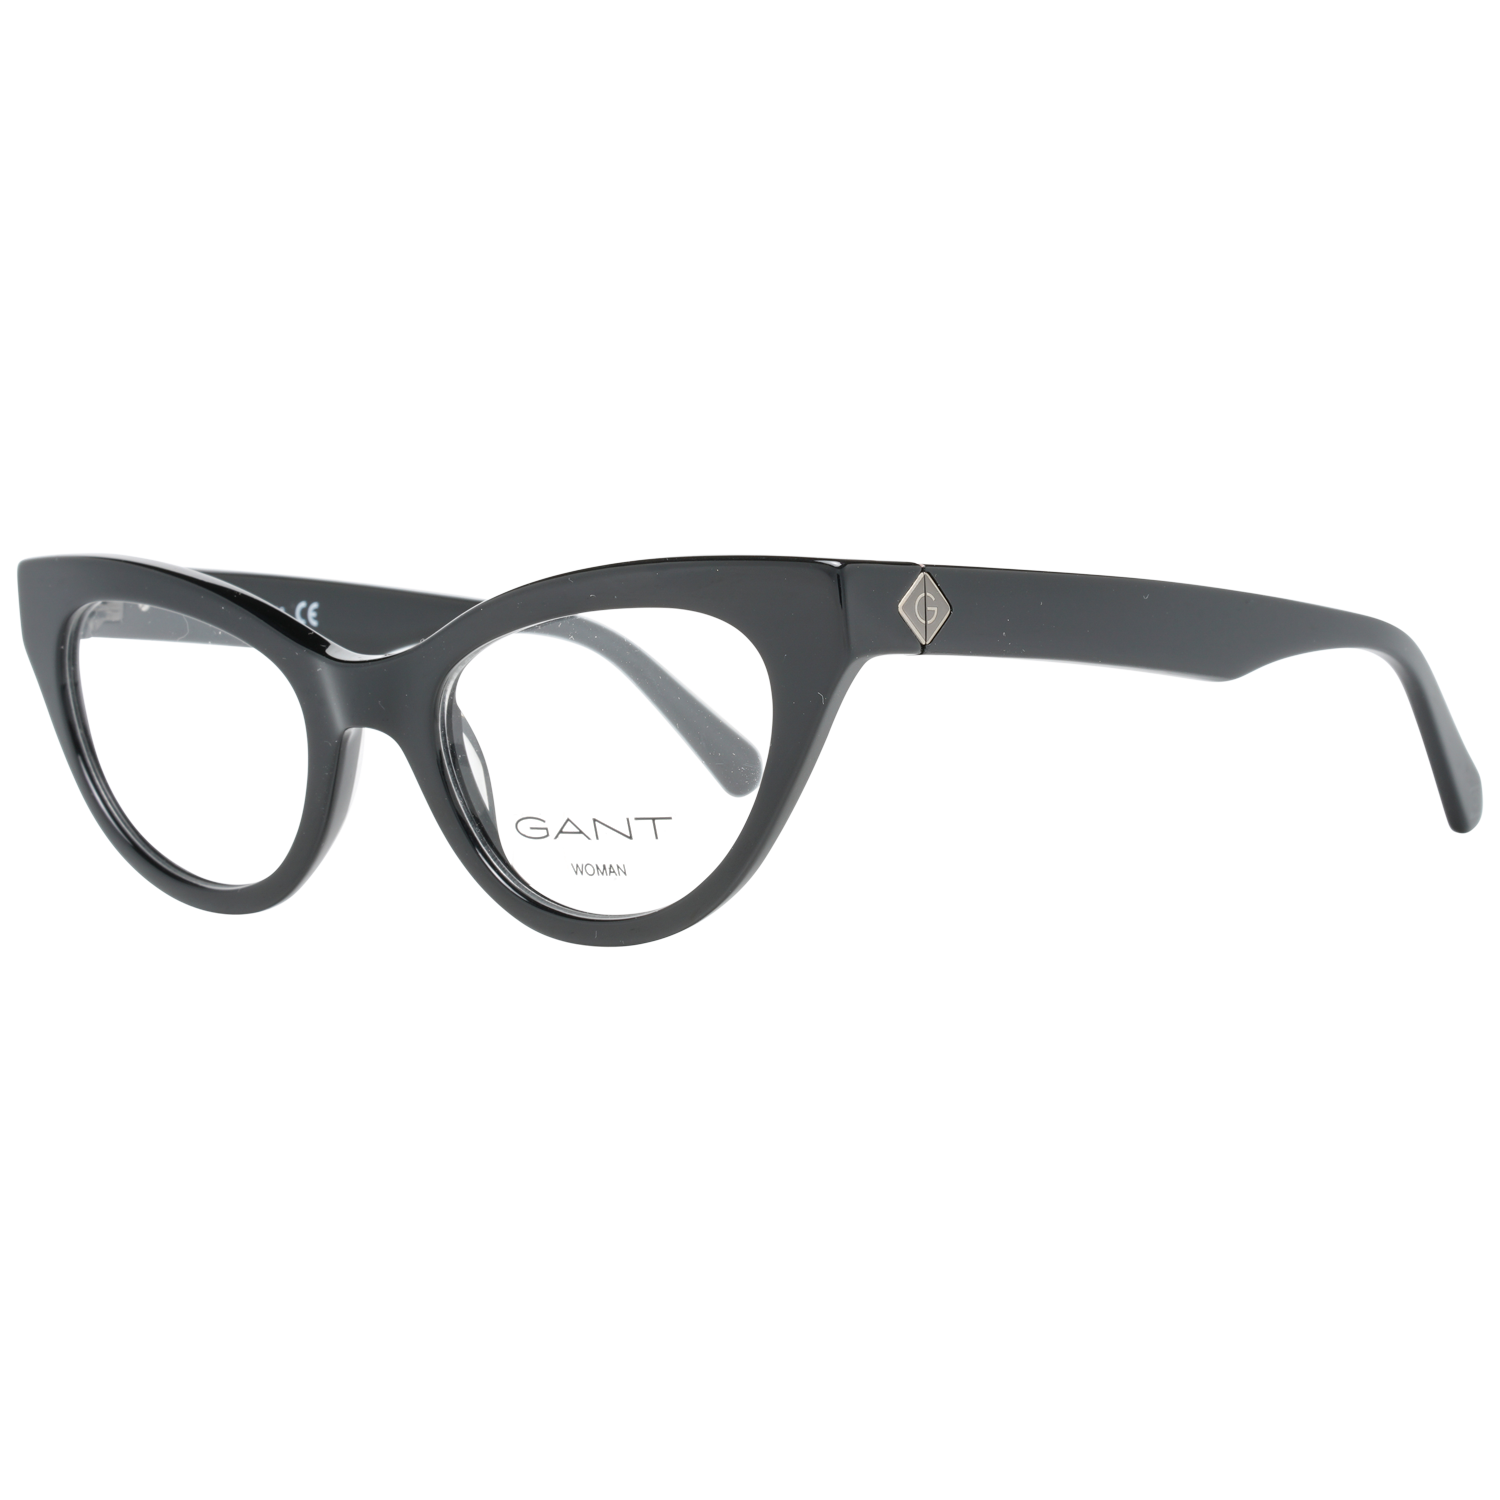 Gant Optical Frame GA4100 001 49 Black